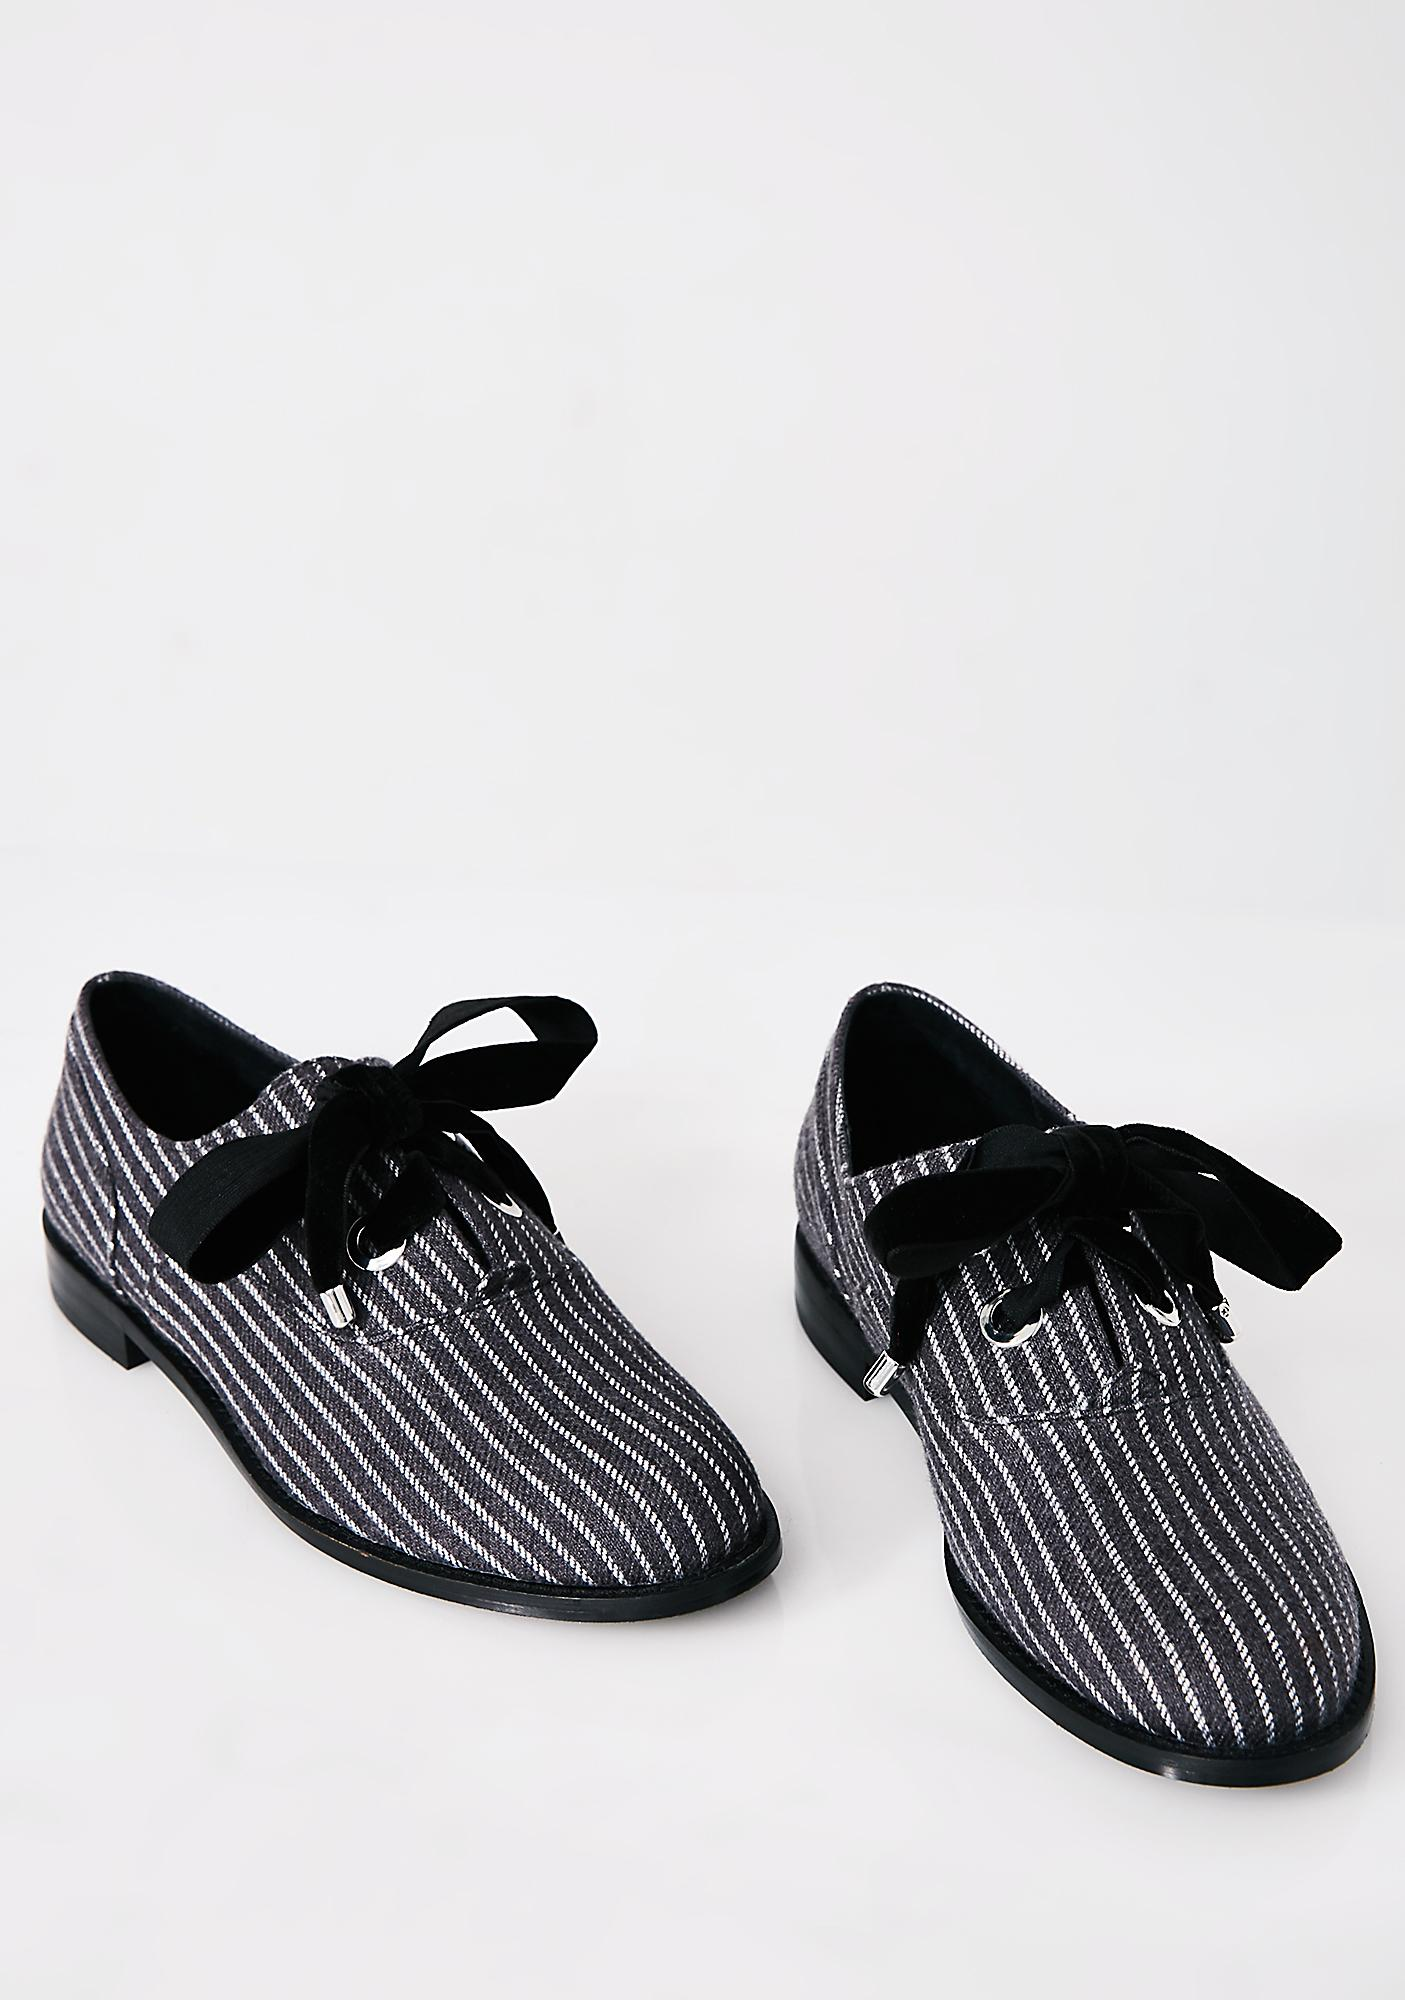 Shellys London Frankie Oxfords